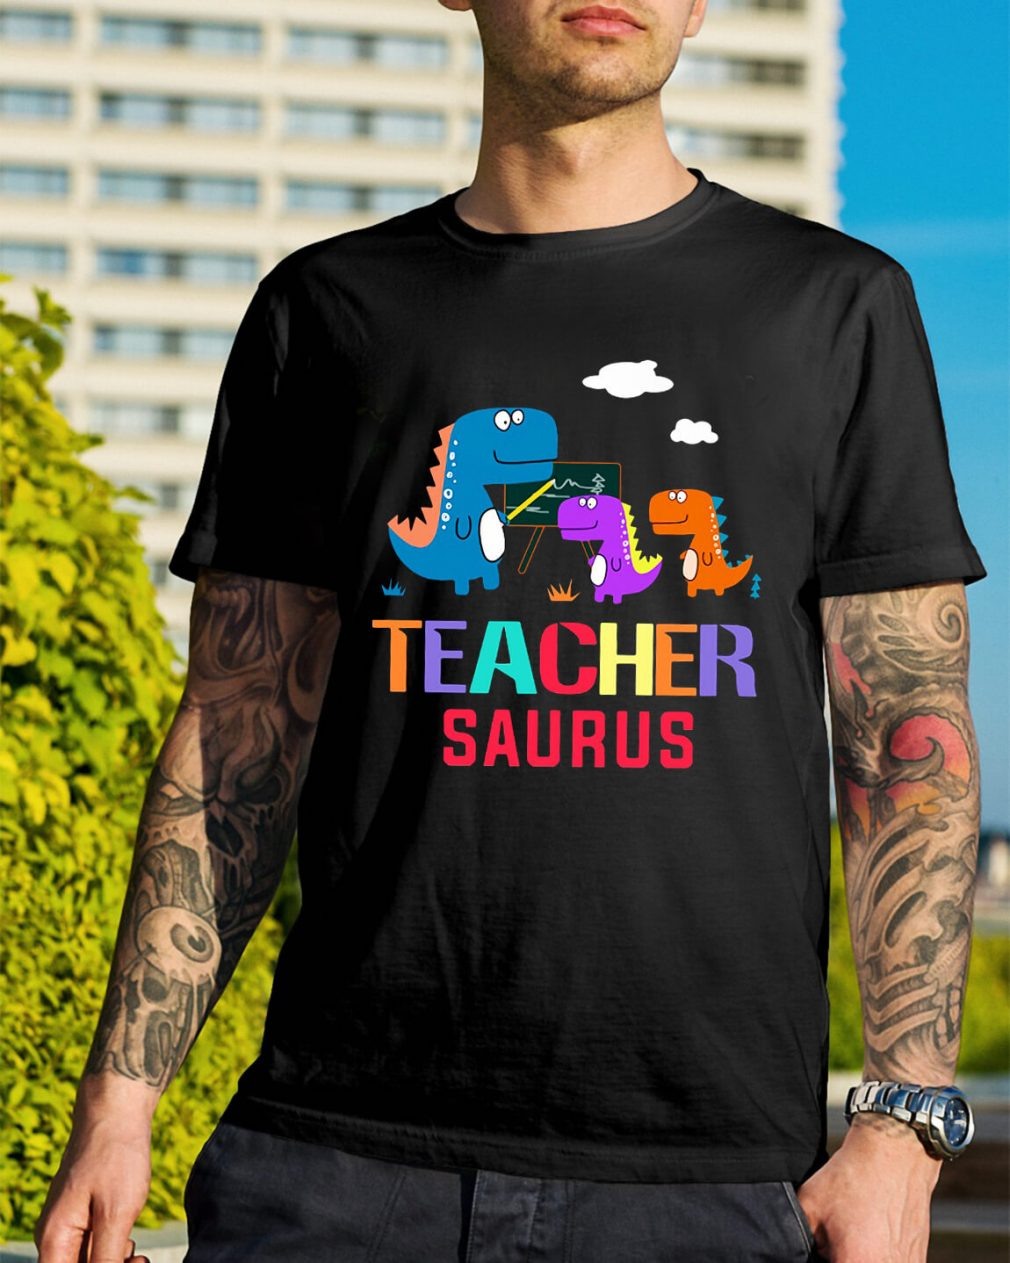 Teacher Saurus shirt